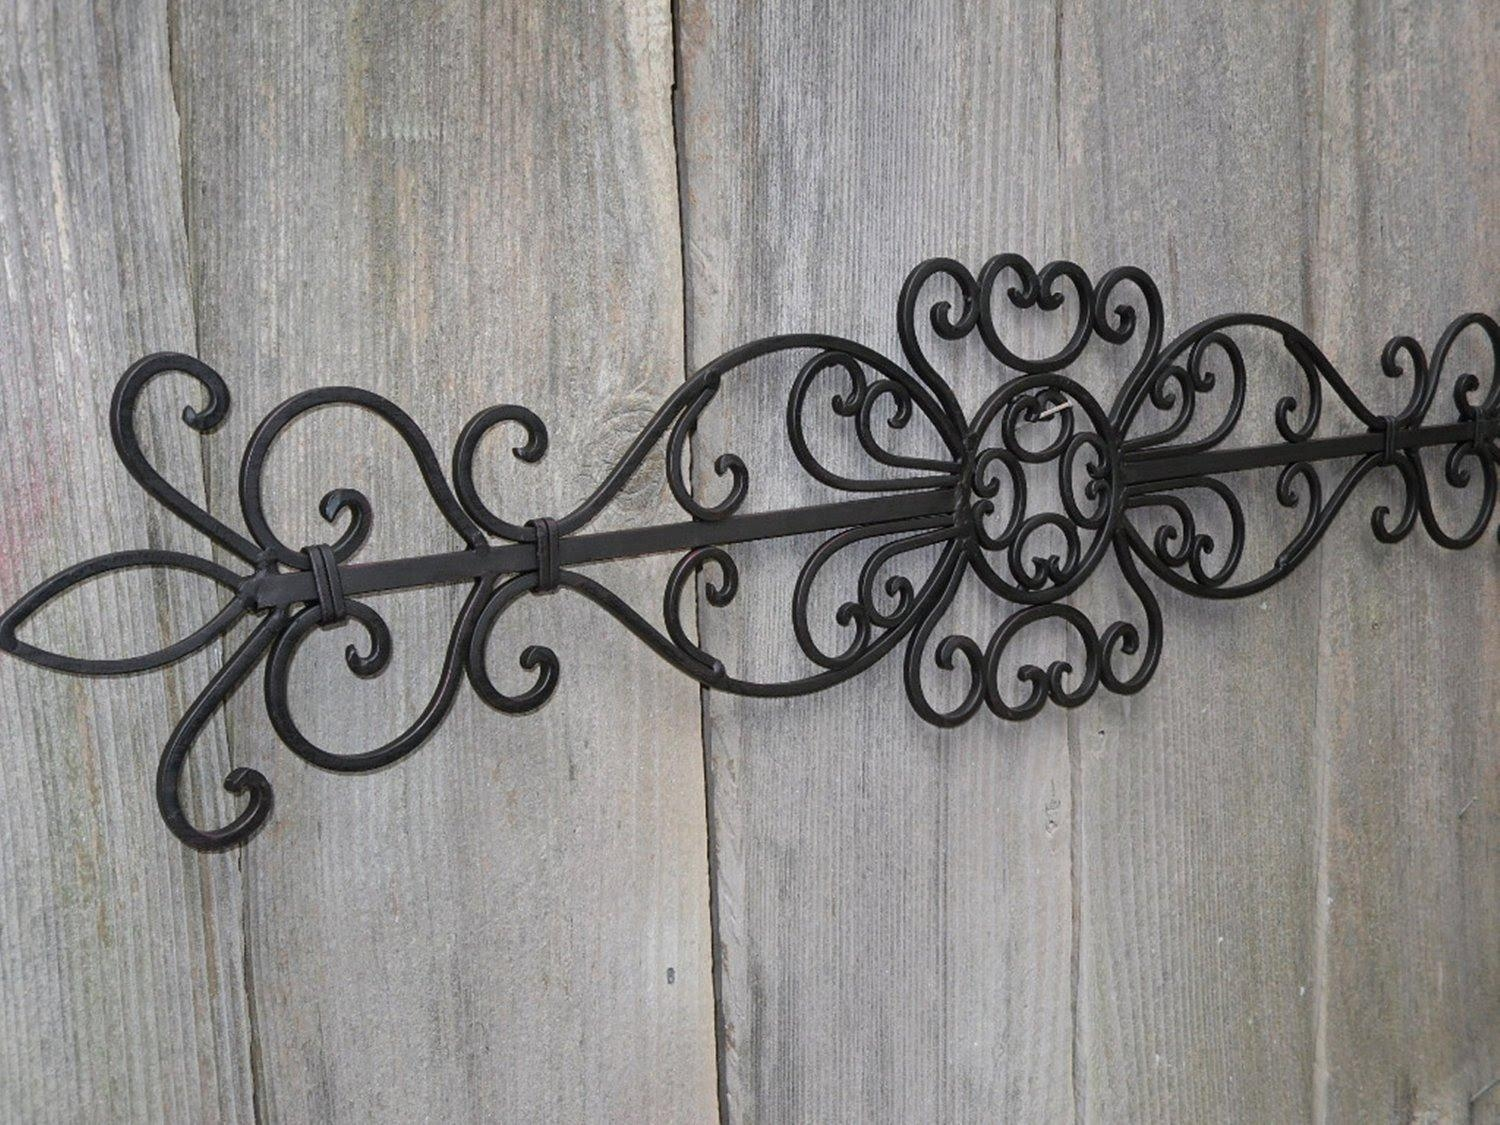 Wrought Iron Wall Decor # Wrought Iron Wall Art Decor – Youtube Throughout Wrought Iron Garden Wall Art (Image 19 of 20)